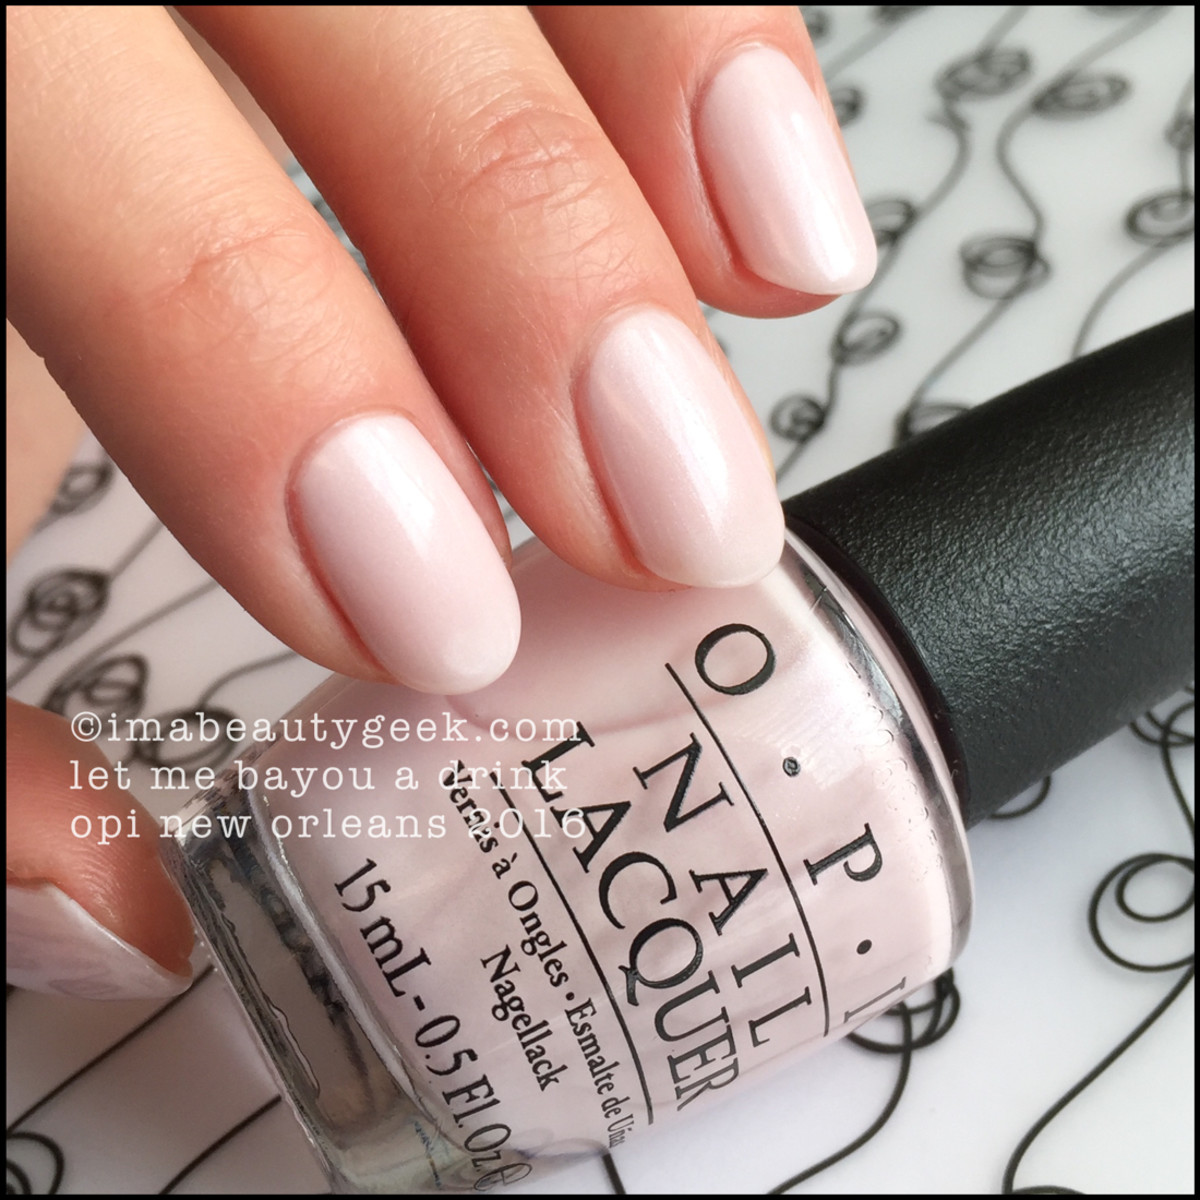 OPI Let Me Bayou a Drink_OPI New Orleans 2016 Collection Swatches Review